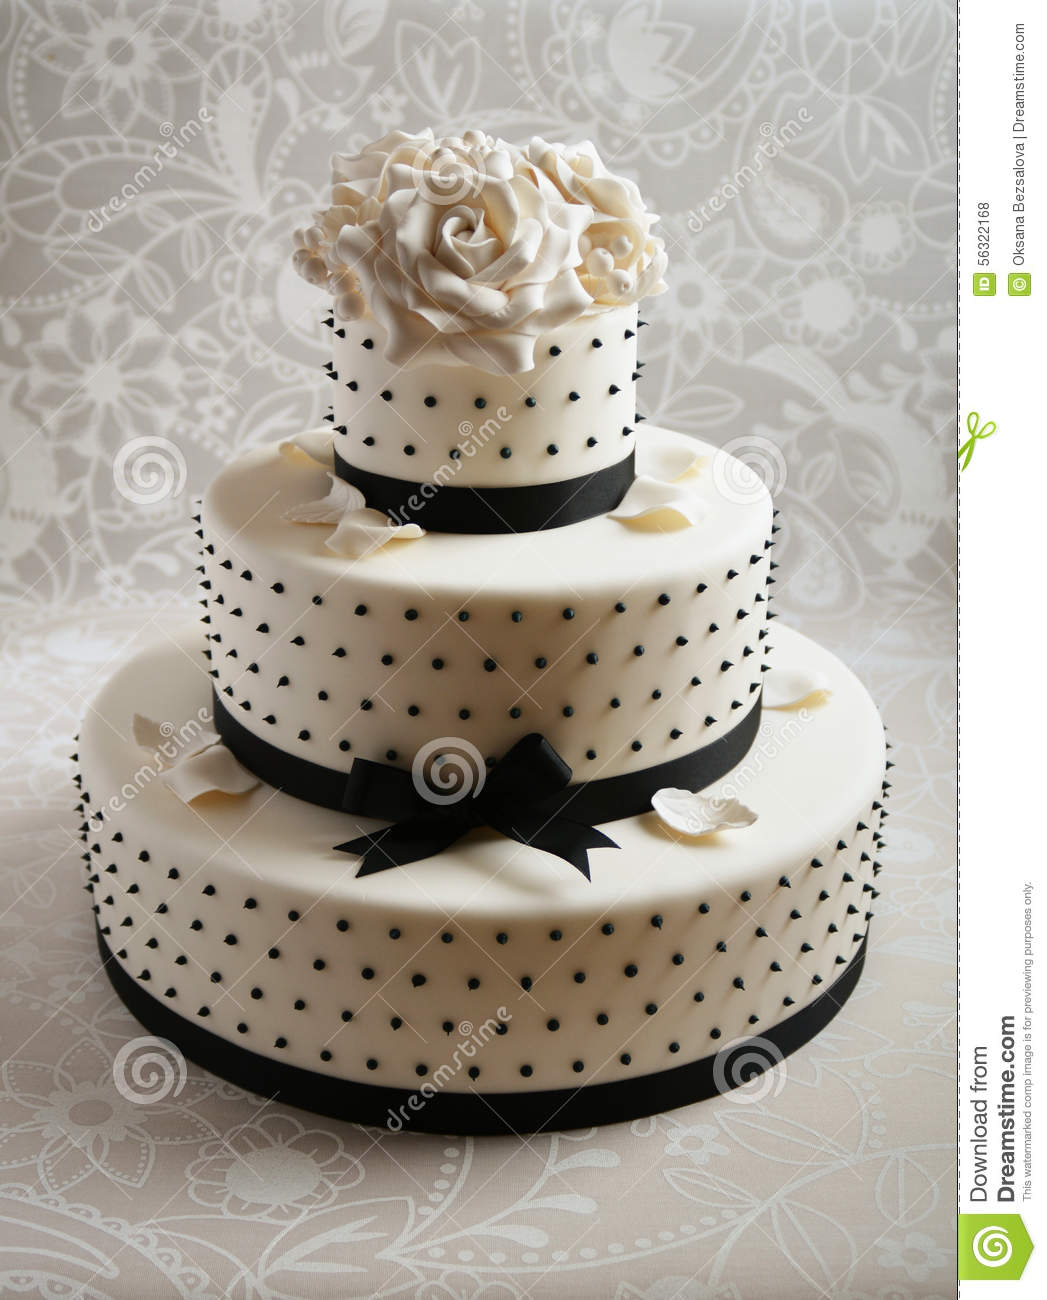 wedding cake fondant or royal icing gorgeous wedding cake stock photo image of wedding 22691